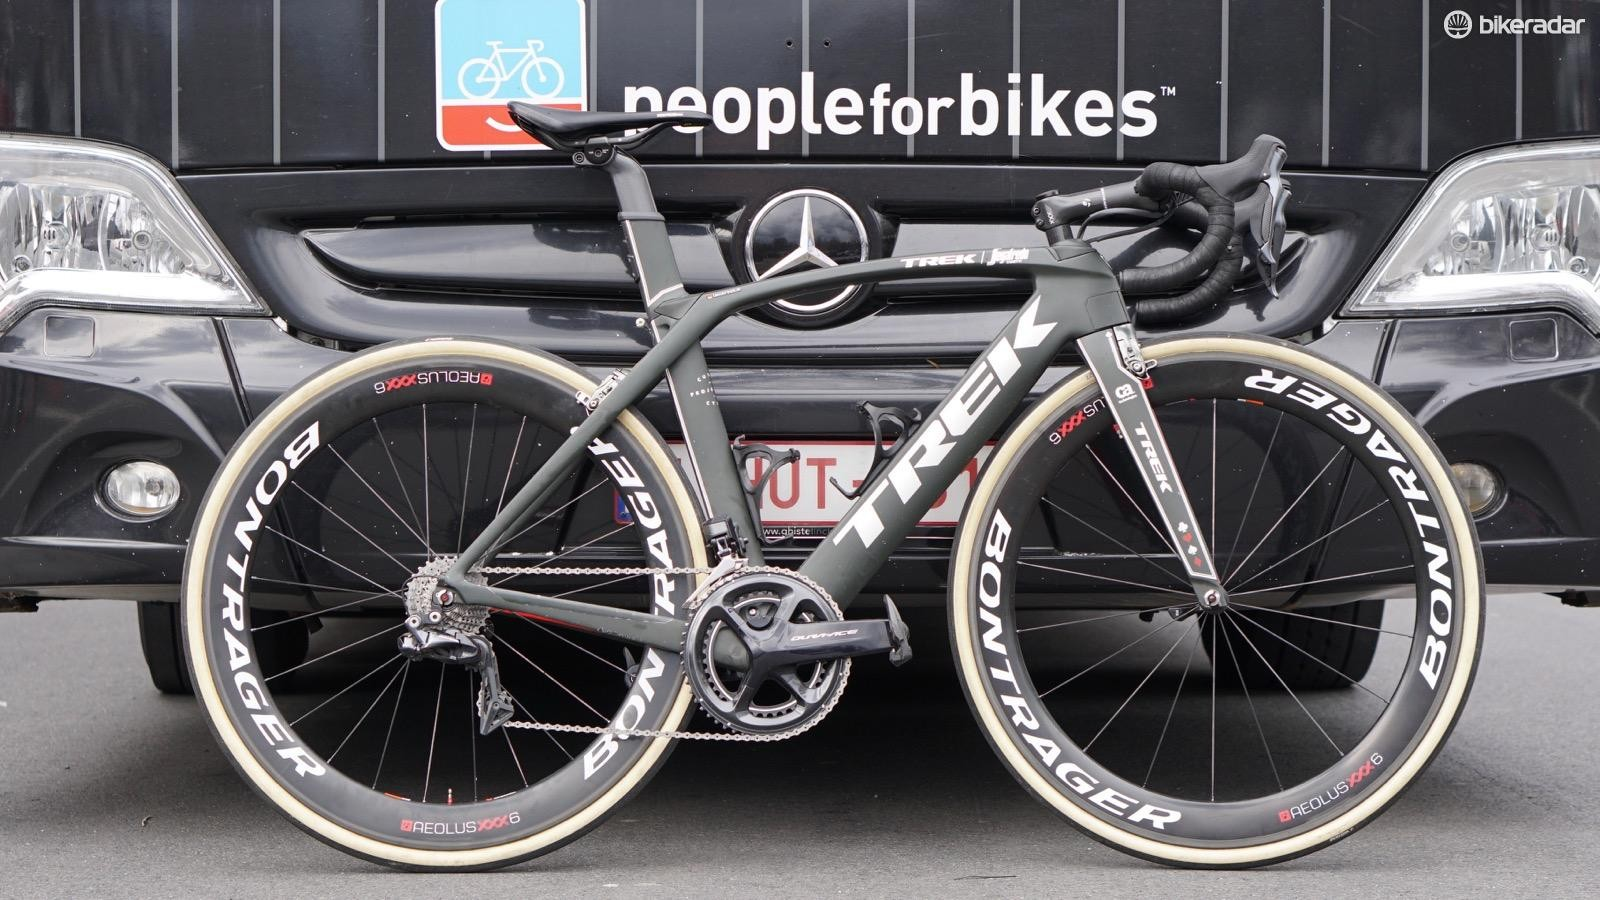 This is the bike Degenkolb will race at the Tour of Flanders, which has a standard handlebar but also shorter cranks and a Shimano power meter